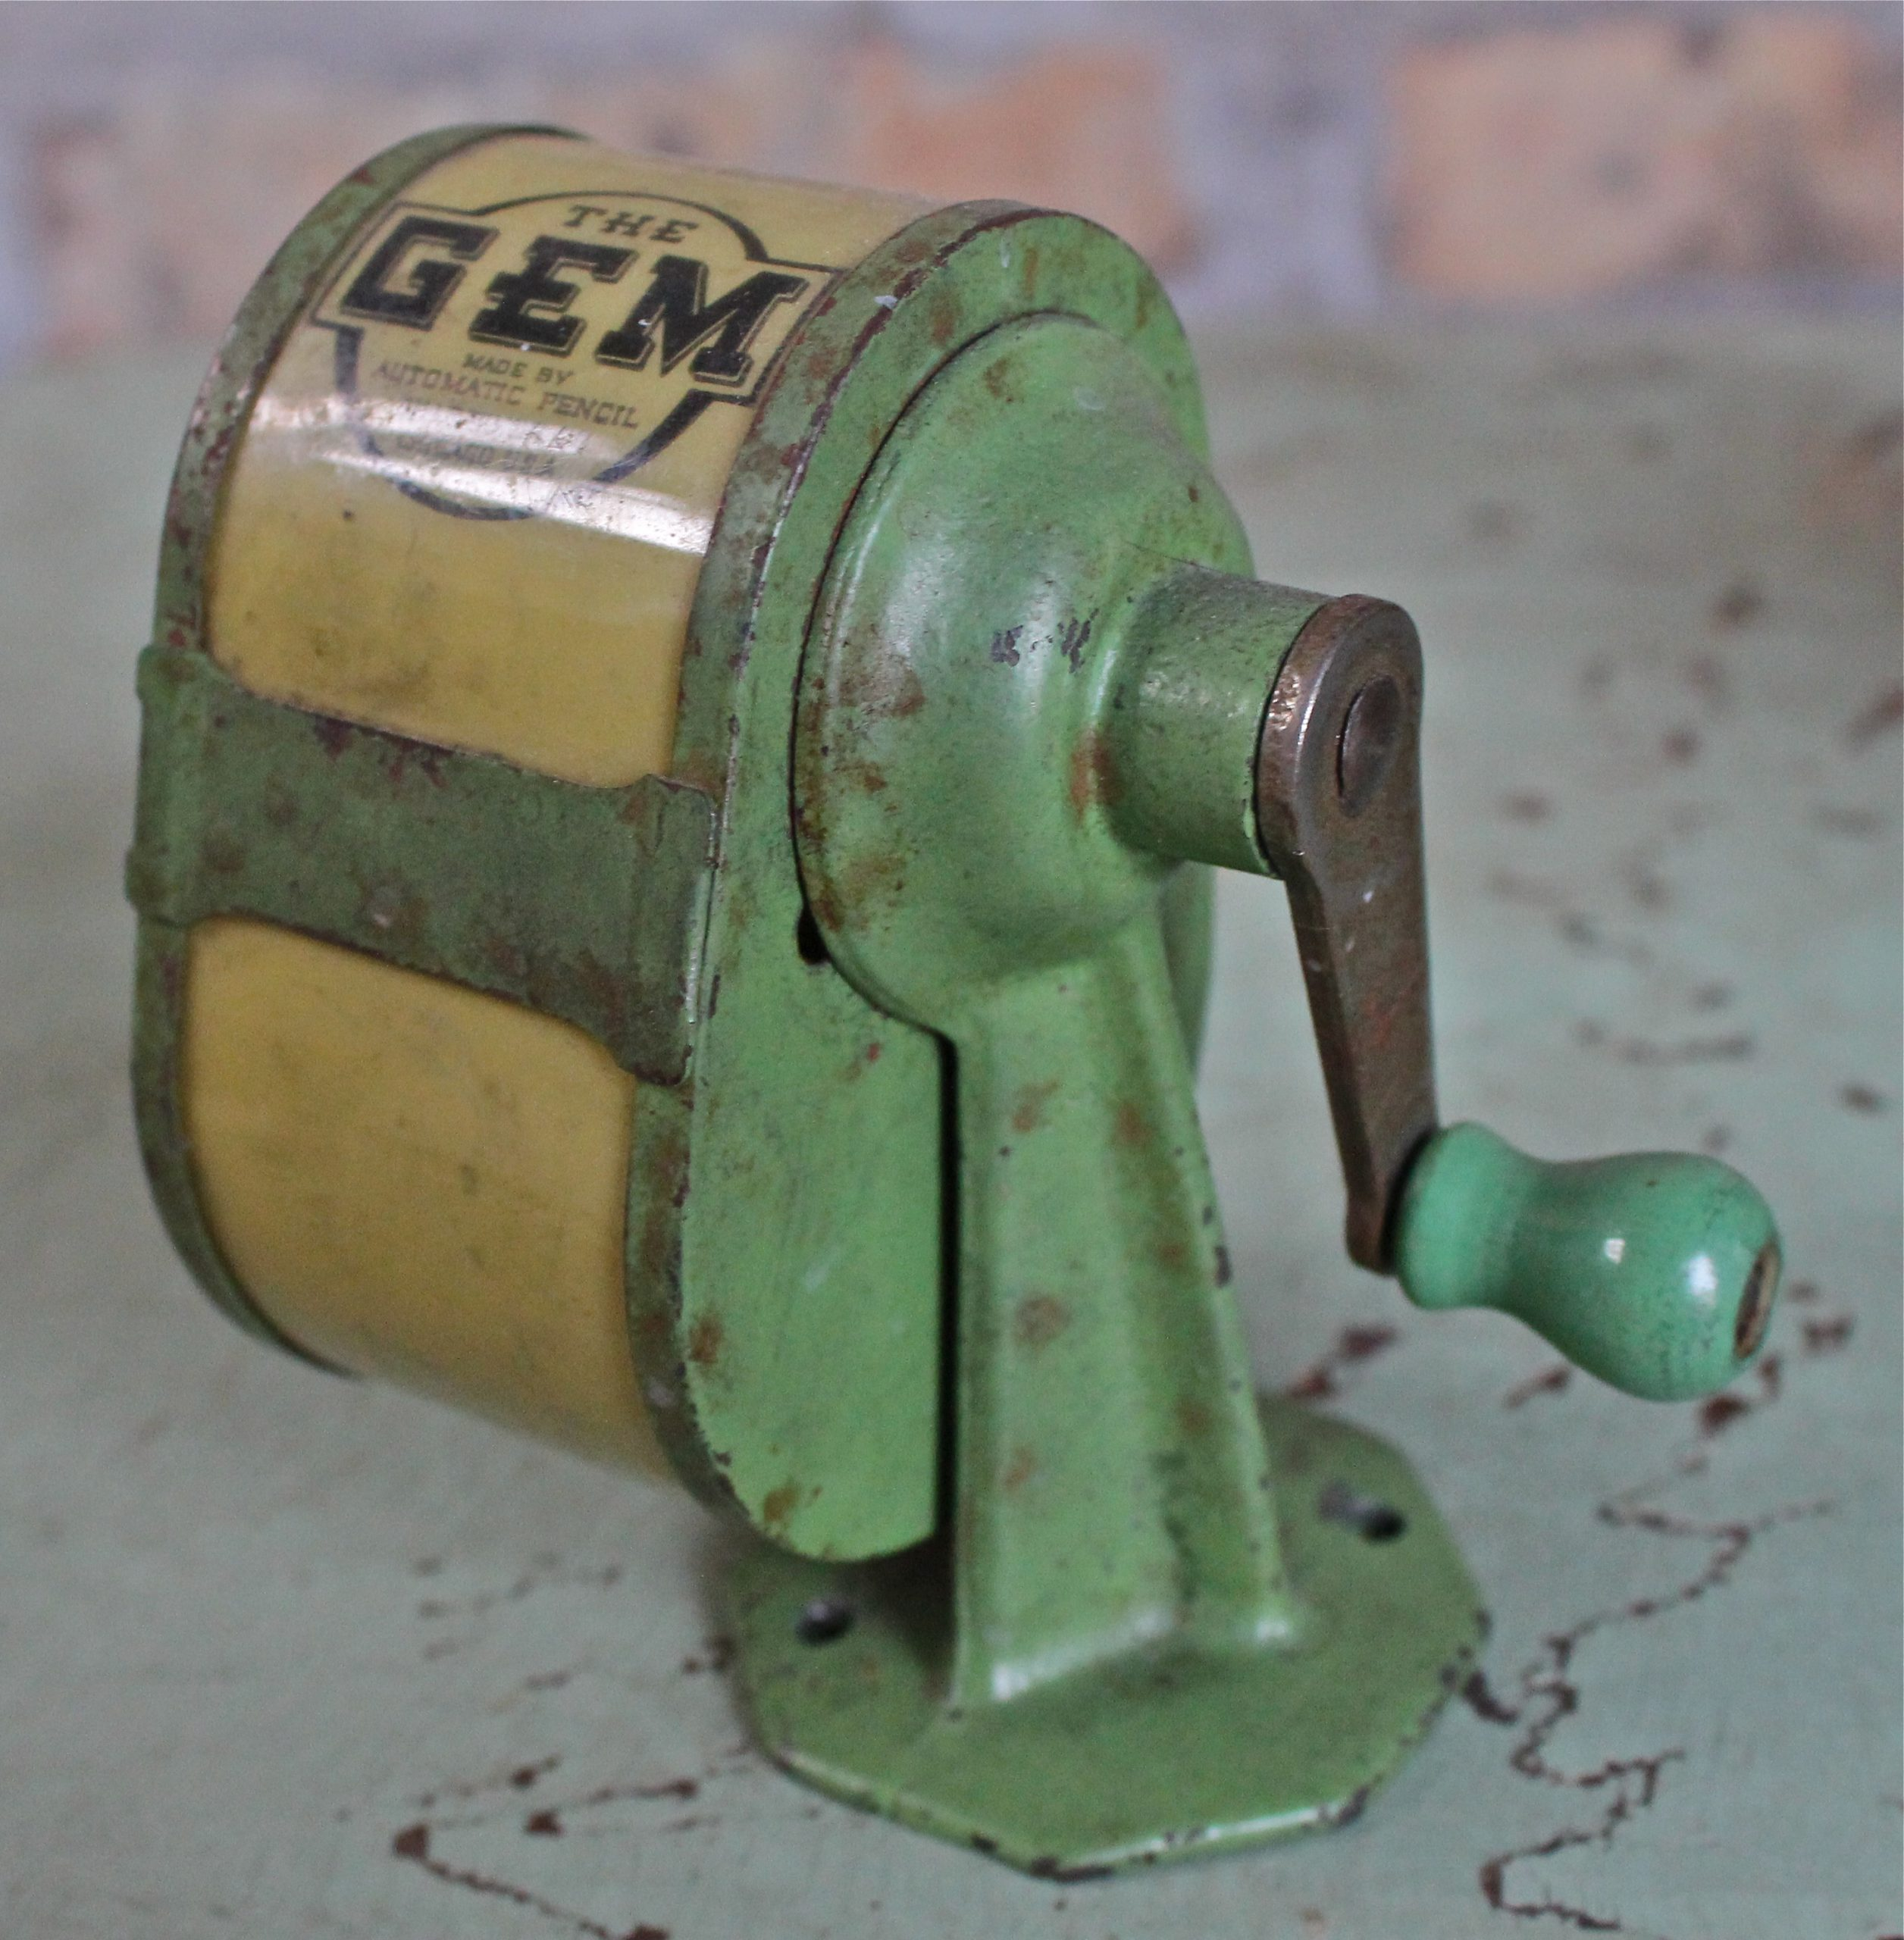 The Gem Pencil Sharpener